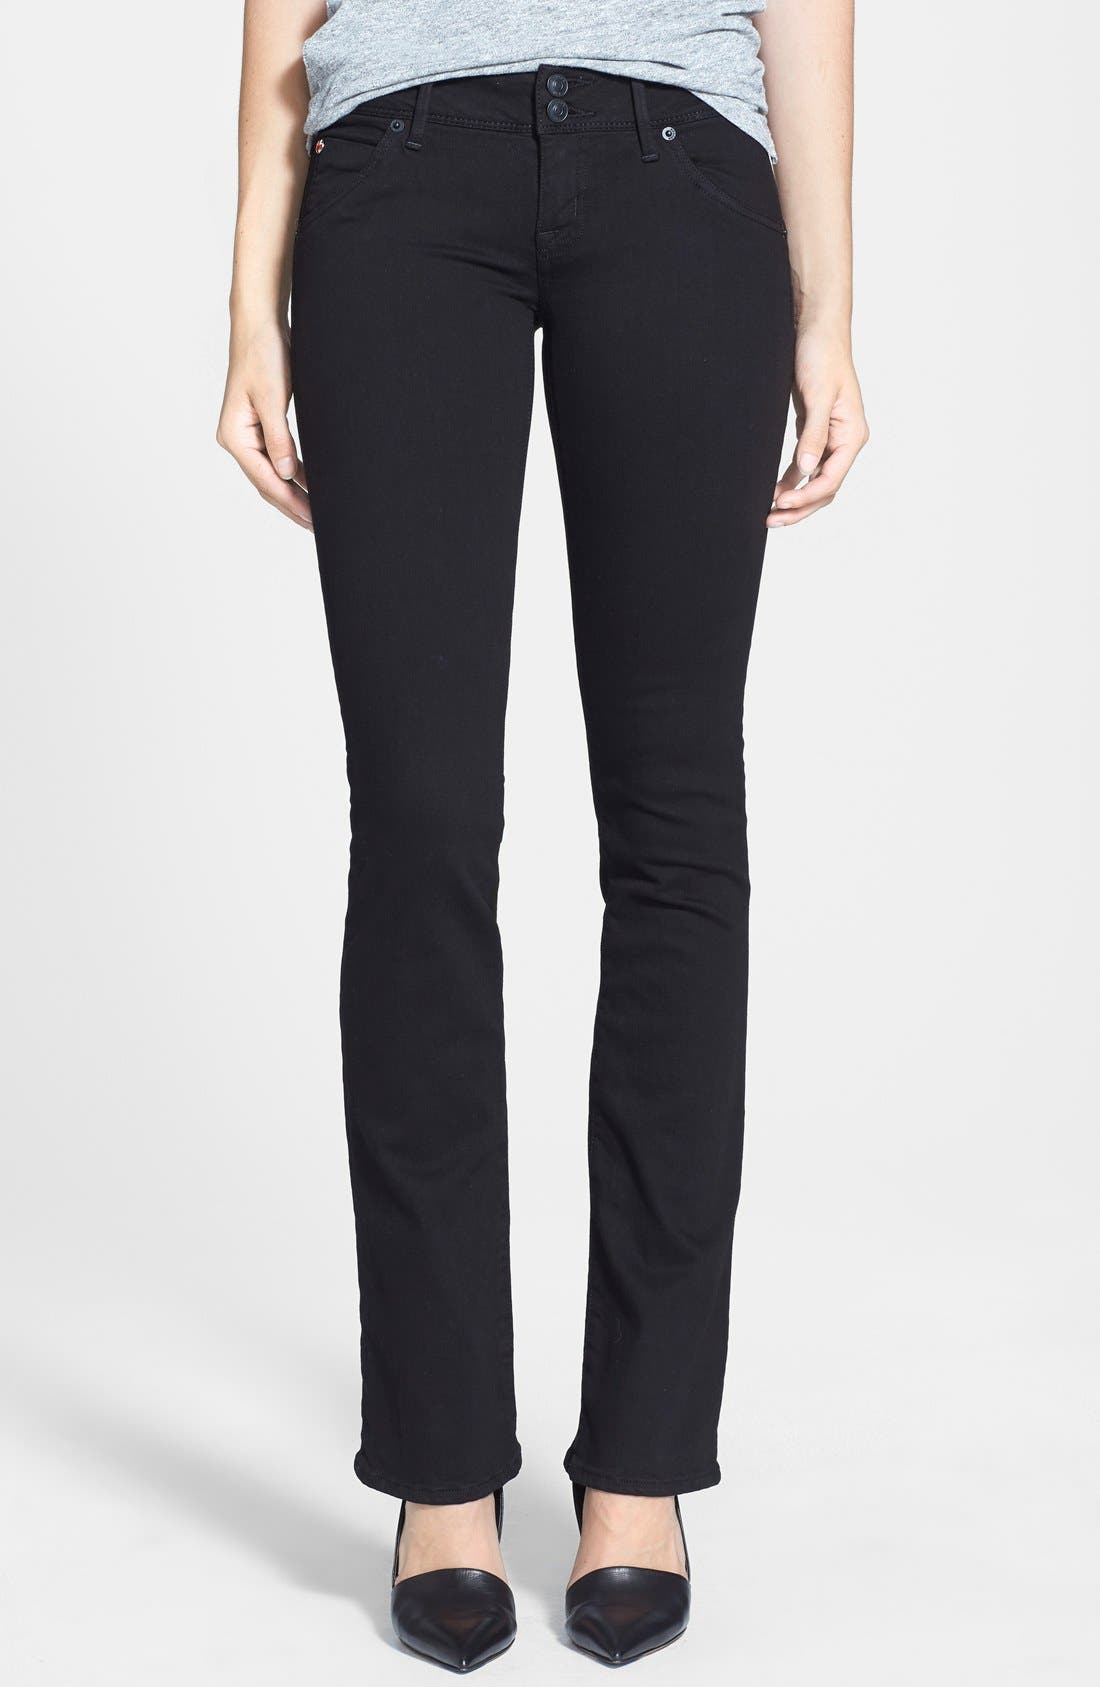 'Beth' Baby BootcutJeans,                             Main thumbnail 1, color,                             001